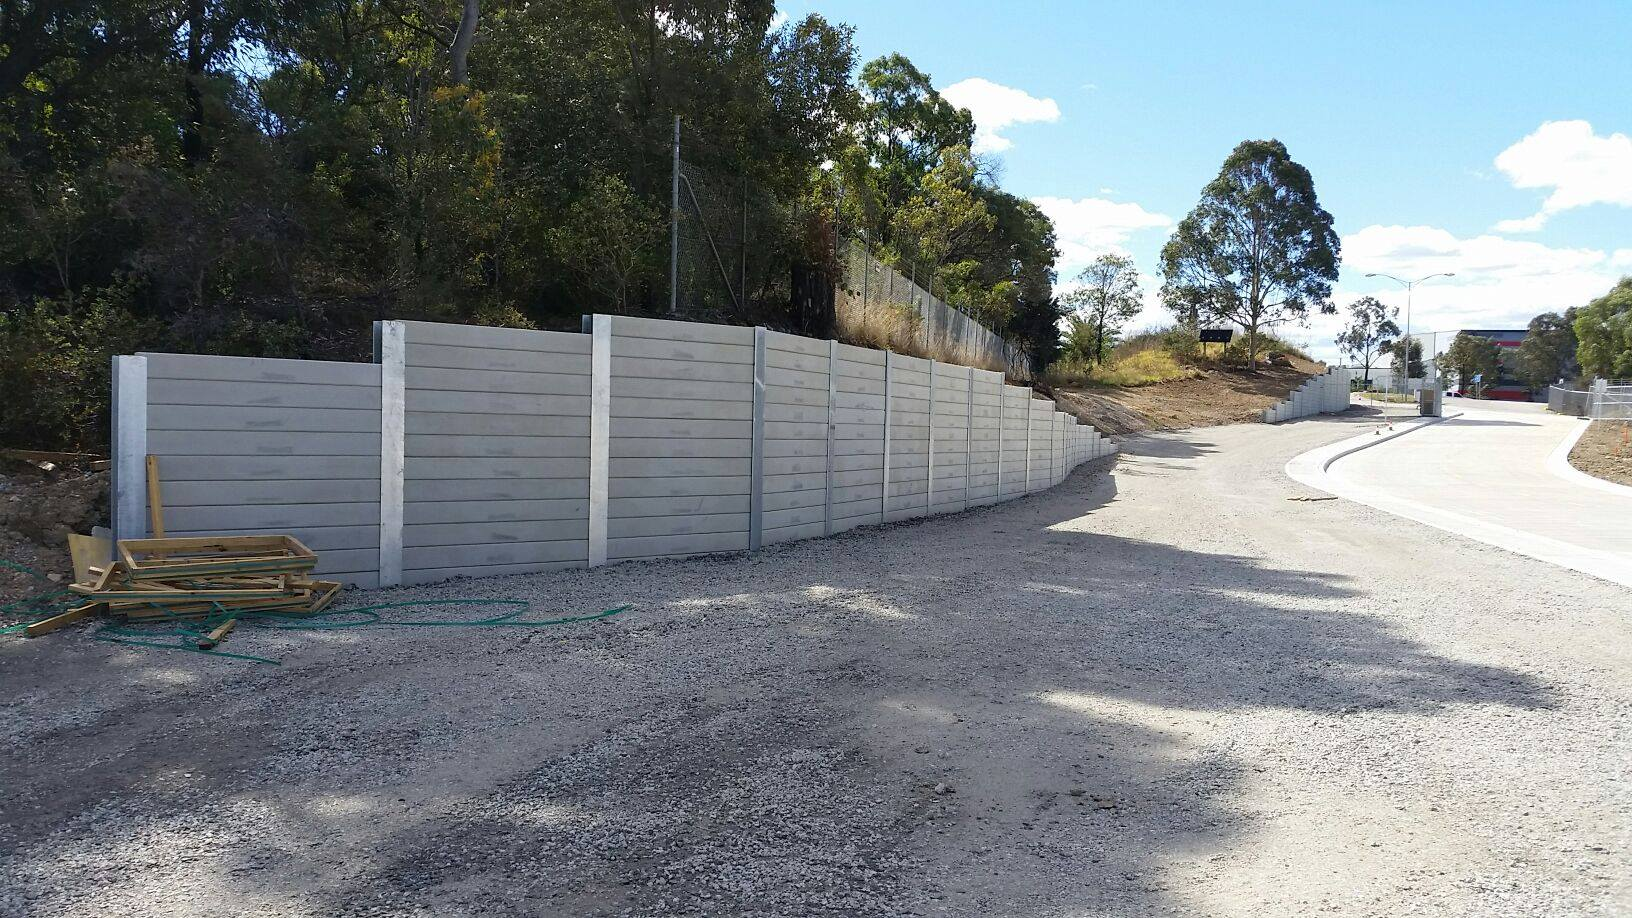 How High Can A Retaining Wall Be Without Council Approval